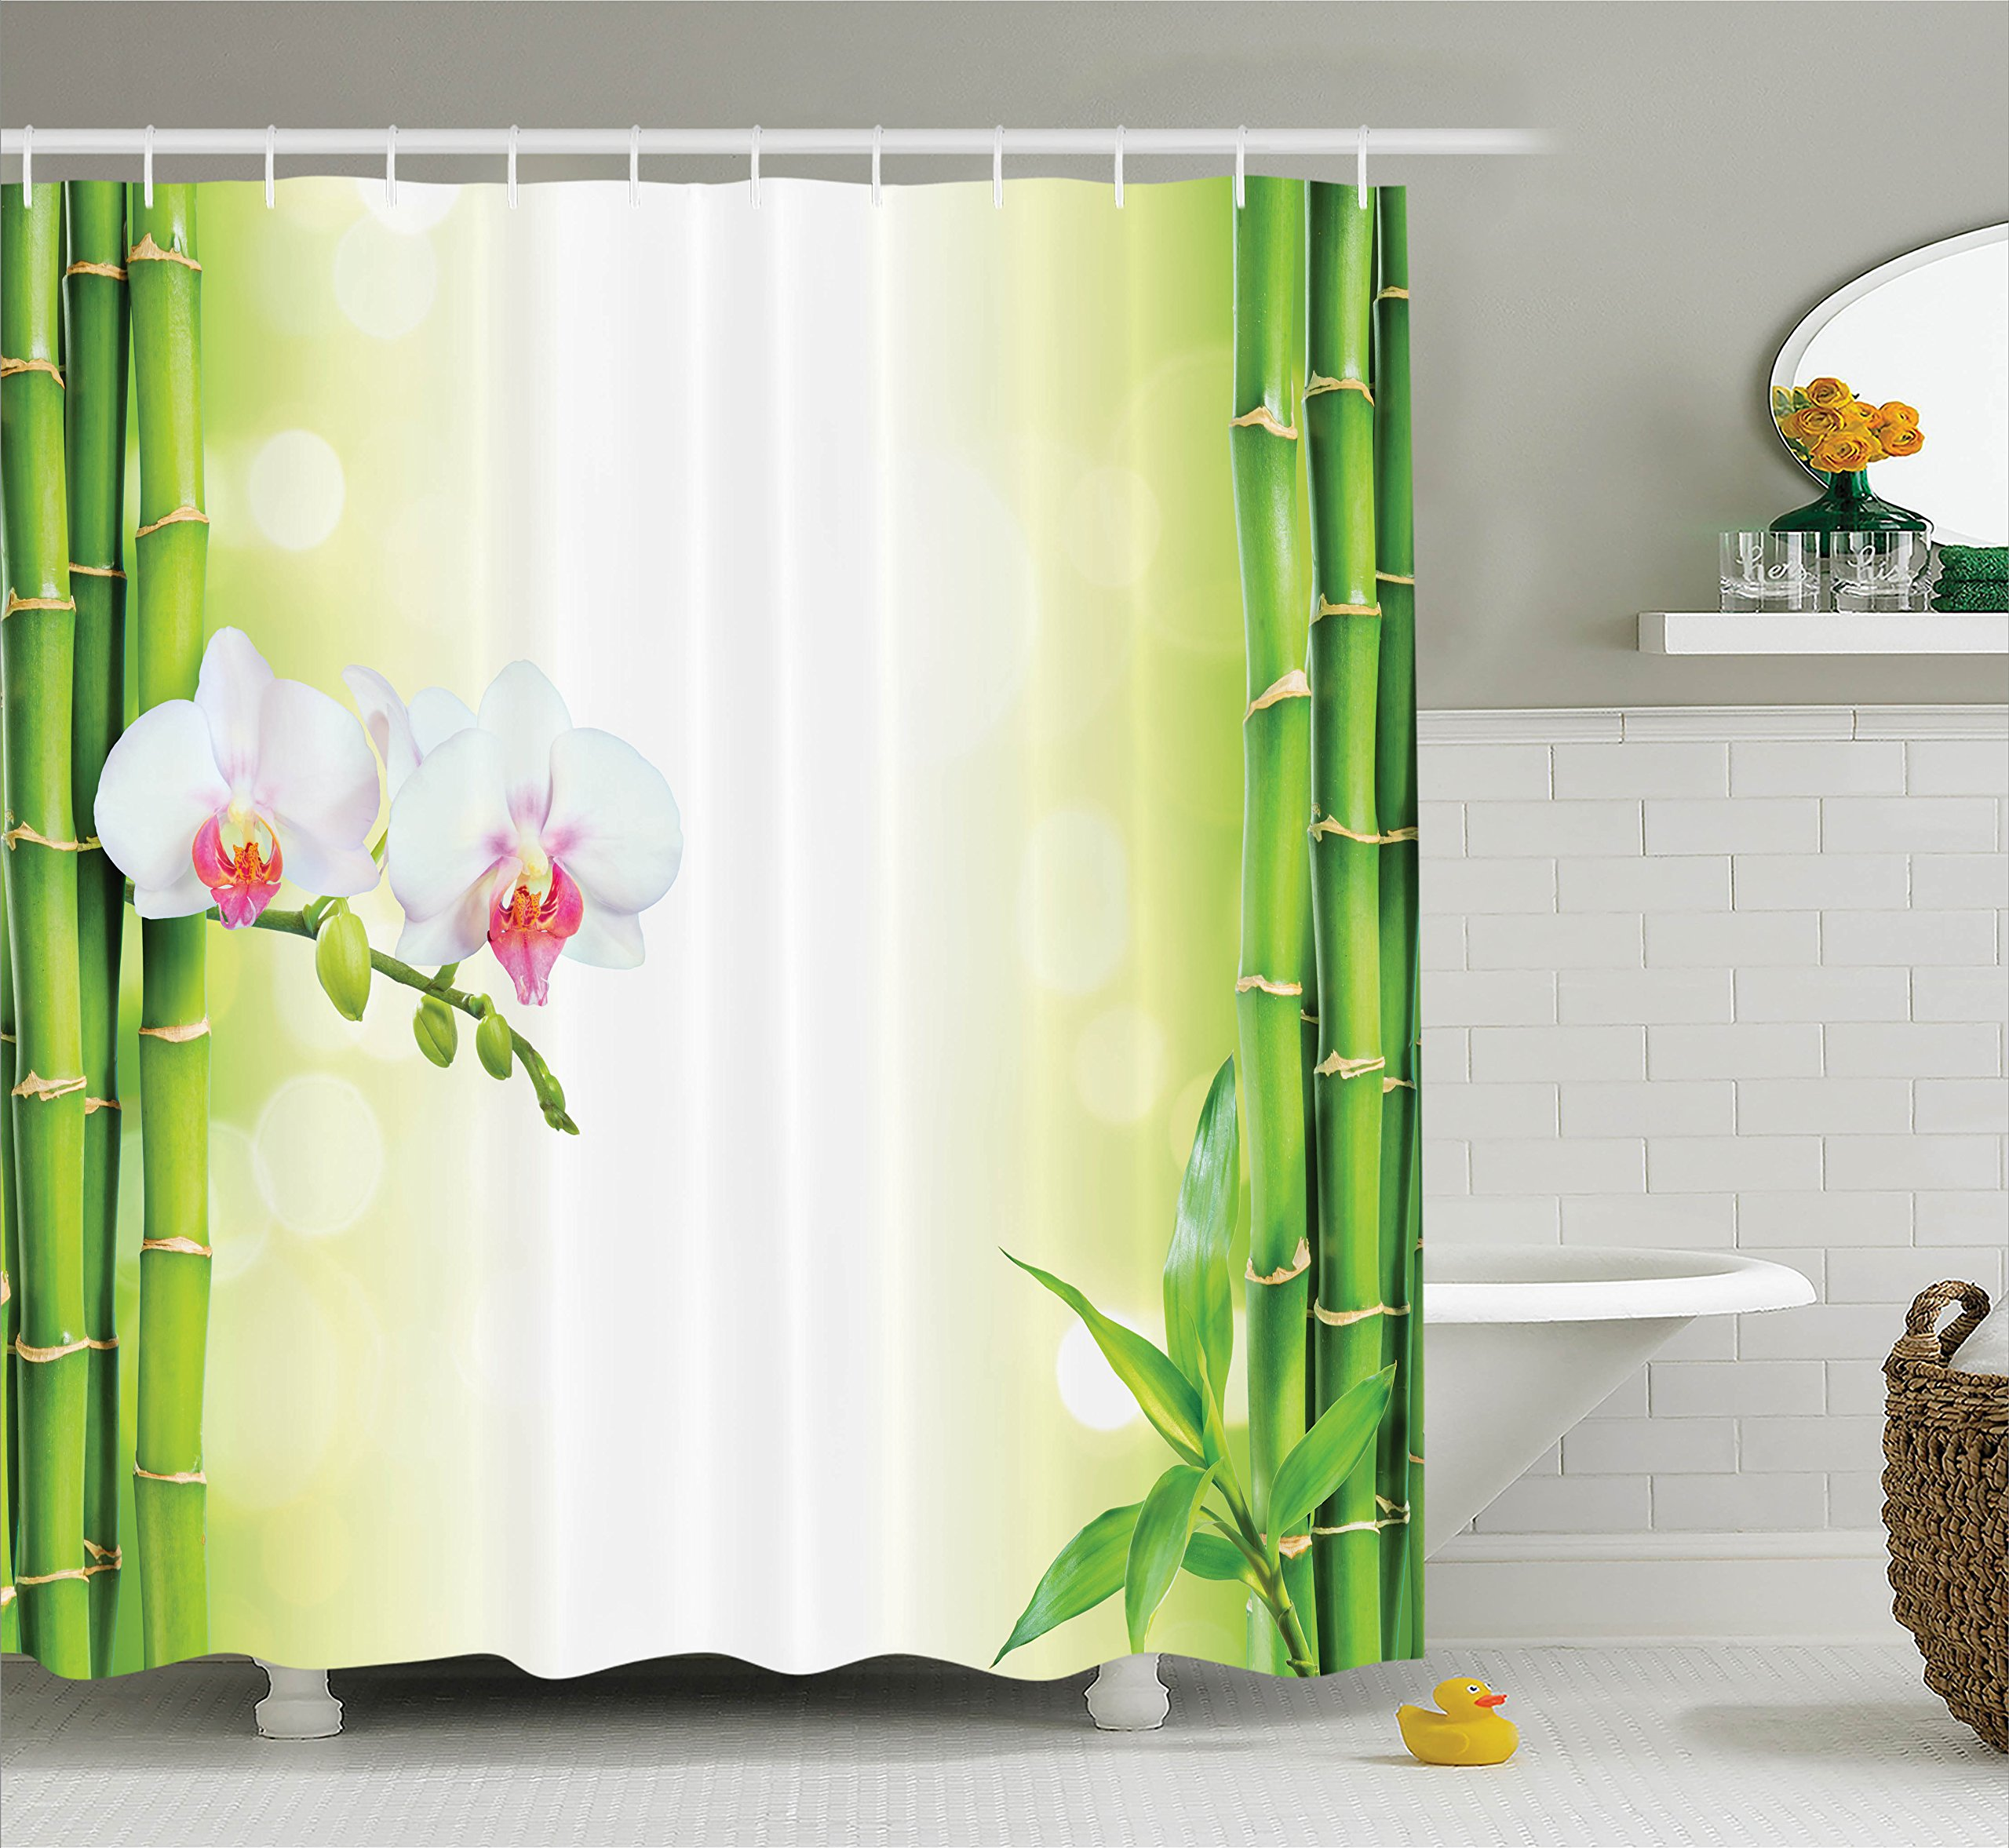 Ambesonne Spa Decor Shower Curtain Set, Orchid Flowers with Bamboo Branches in Vibrant Colors Spiritual Practice Theme, Bathroom Accessories, 69W X 70L inches, White Green